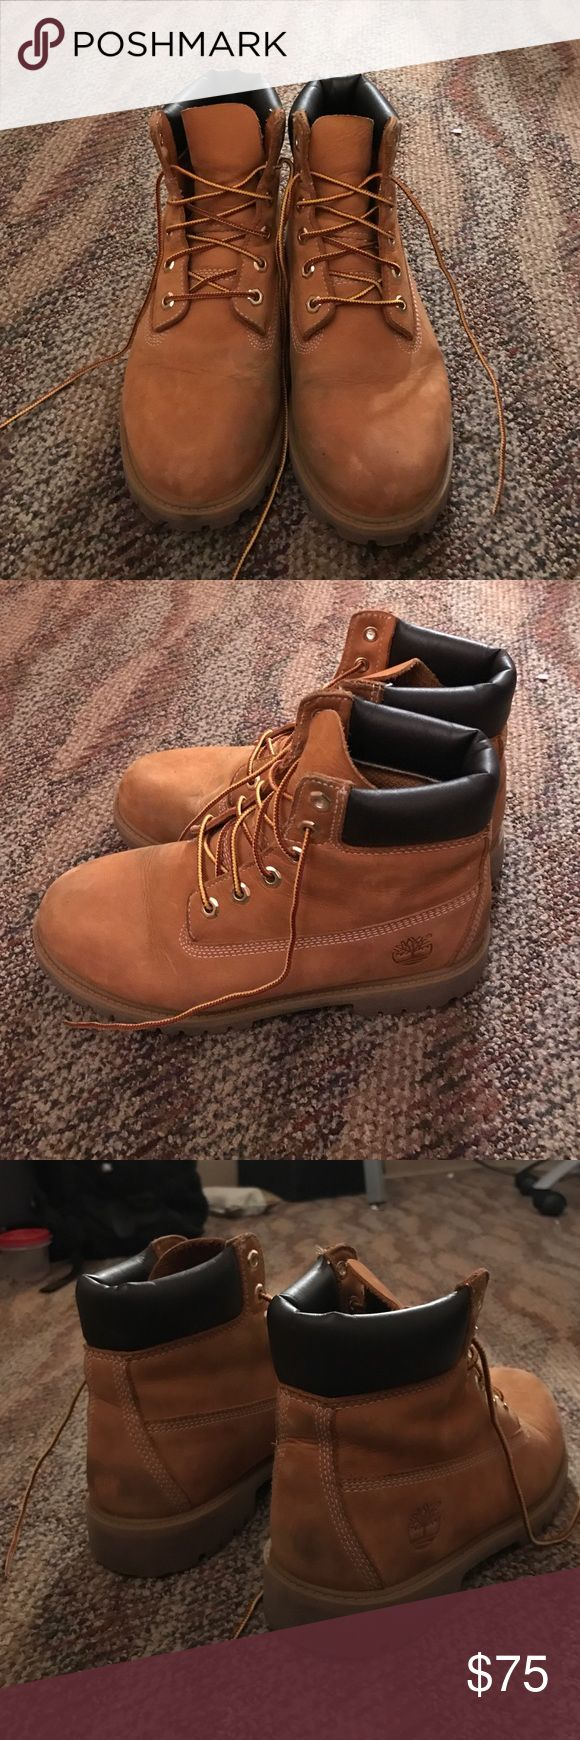 Timberland boot Women's 8 men's 6 timberland boot in great condition, I just don't wear them much! Timberland Shoes